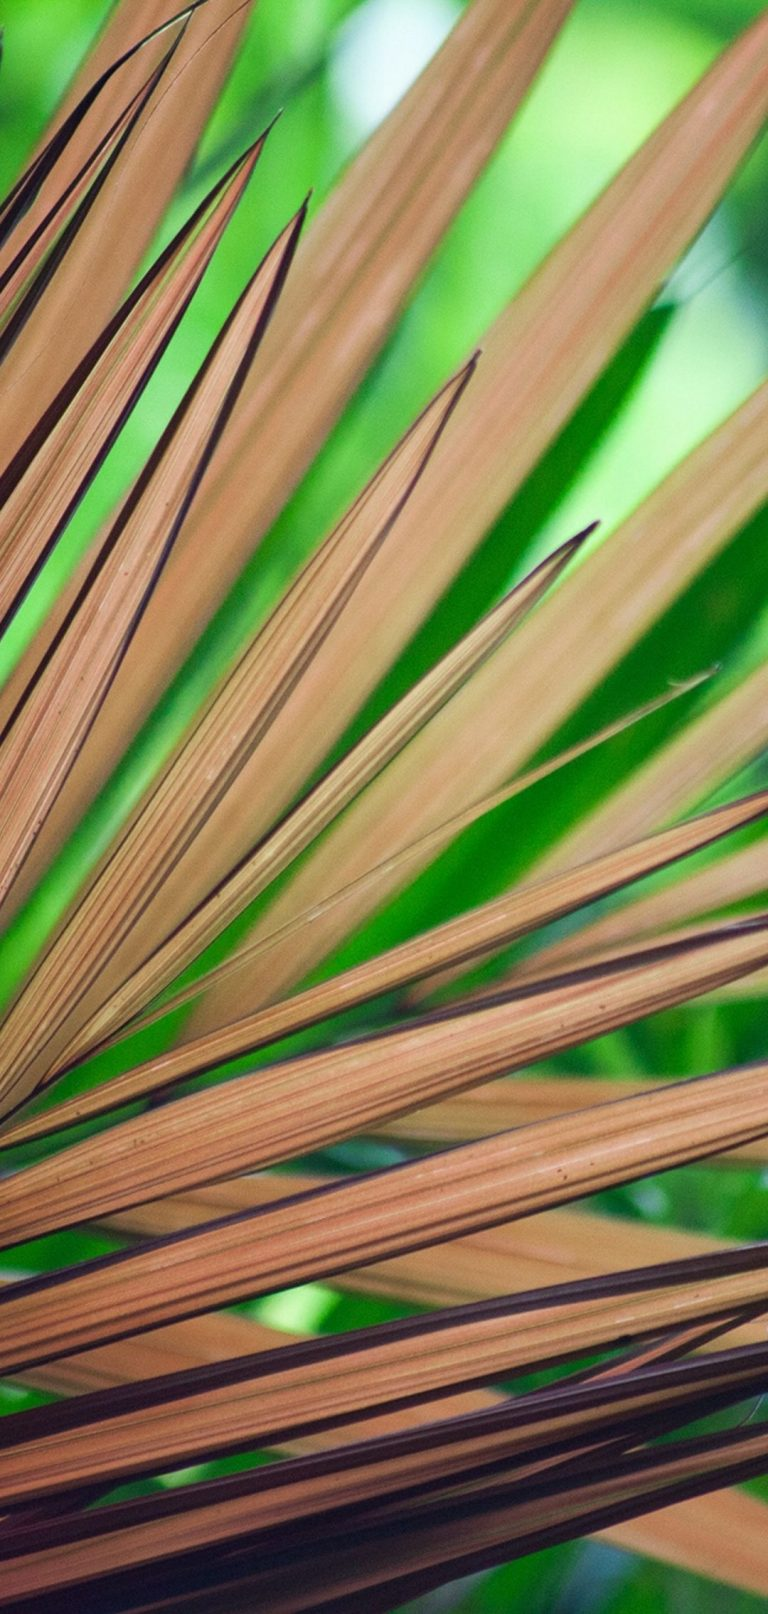 Tree Branches Leaves Tree 1080x2270 768x1614